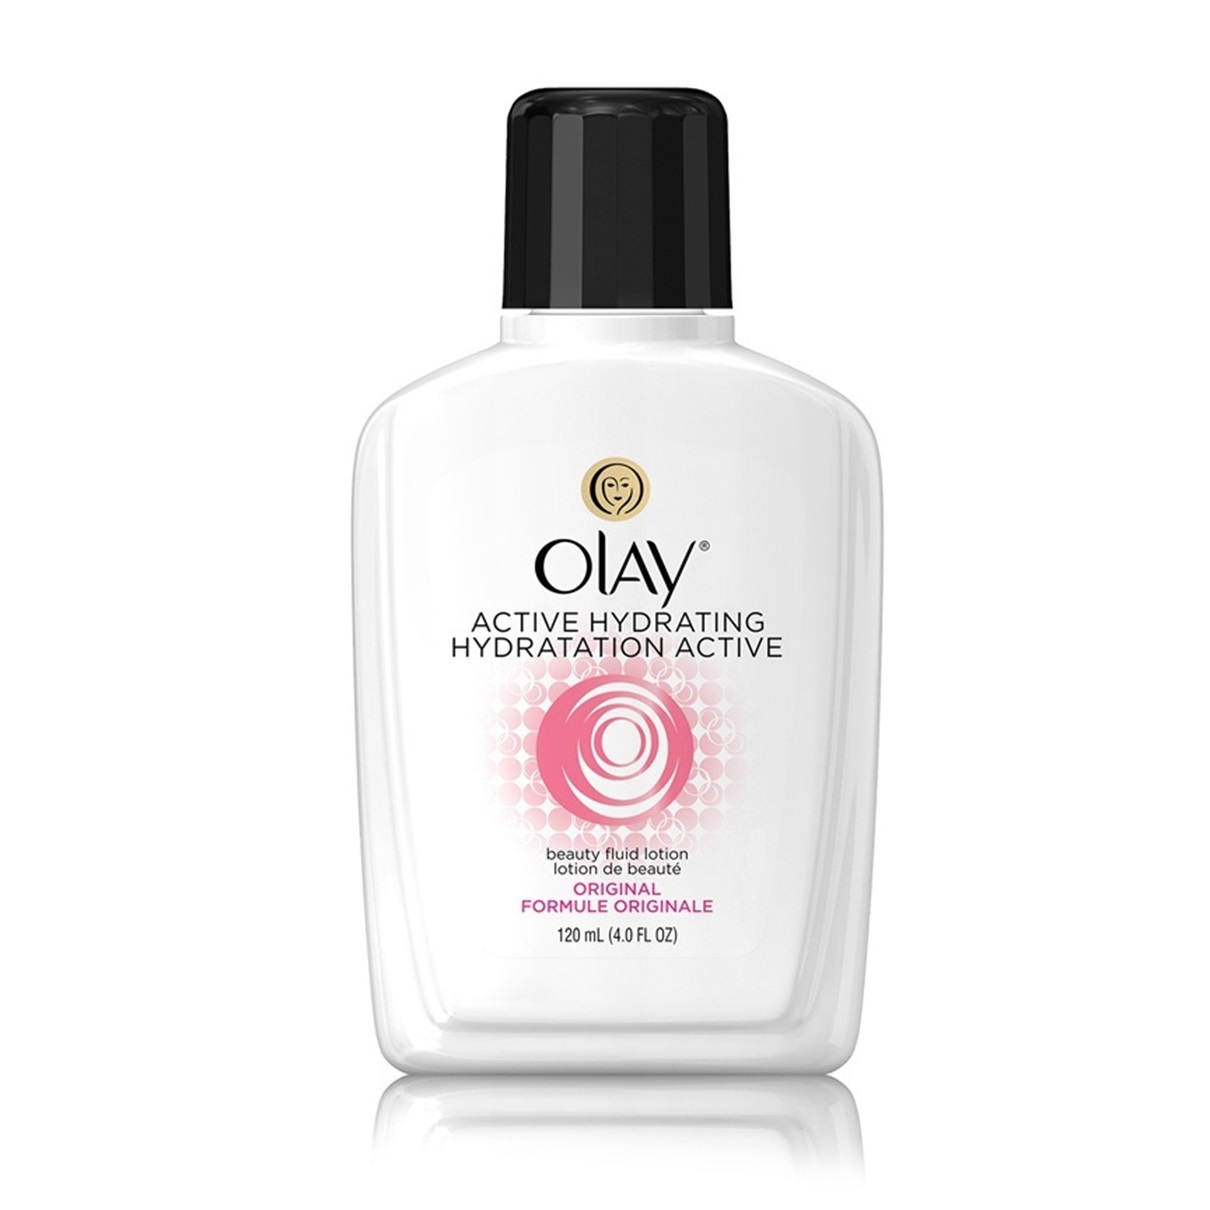 RX1707_ All-Time Best Skincare Secrets Olay Active Hydrating Beauty Fluid Lotion